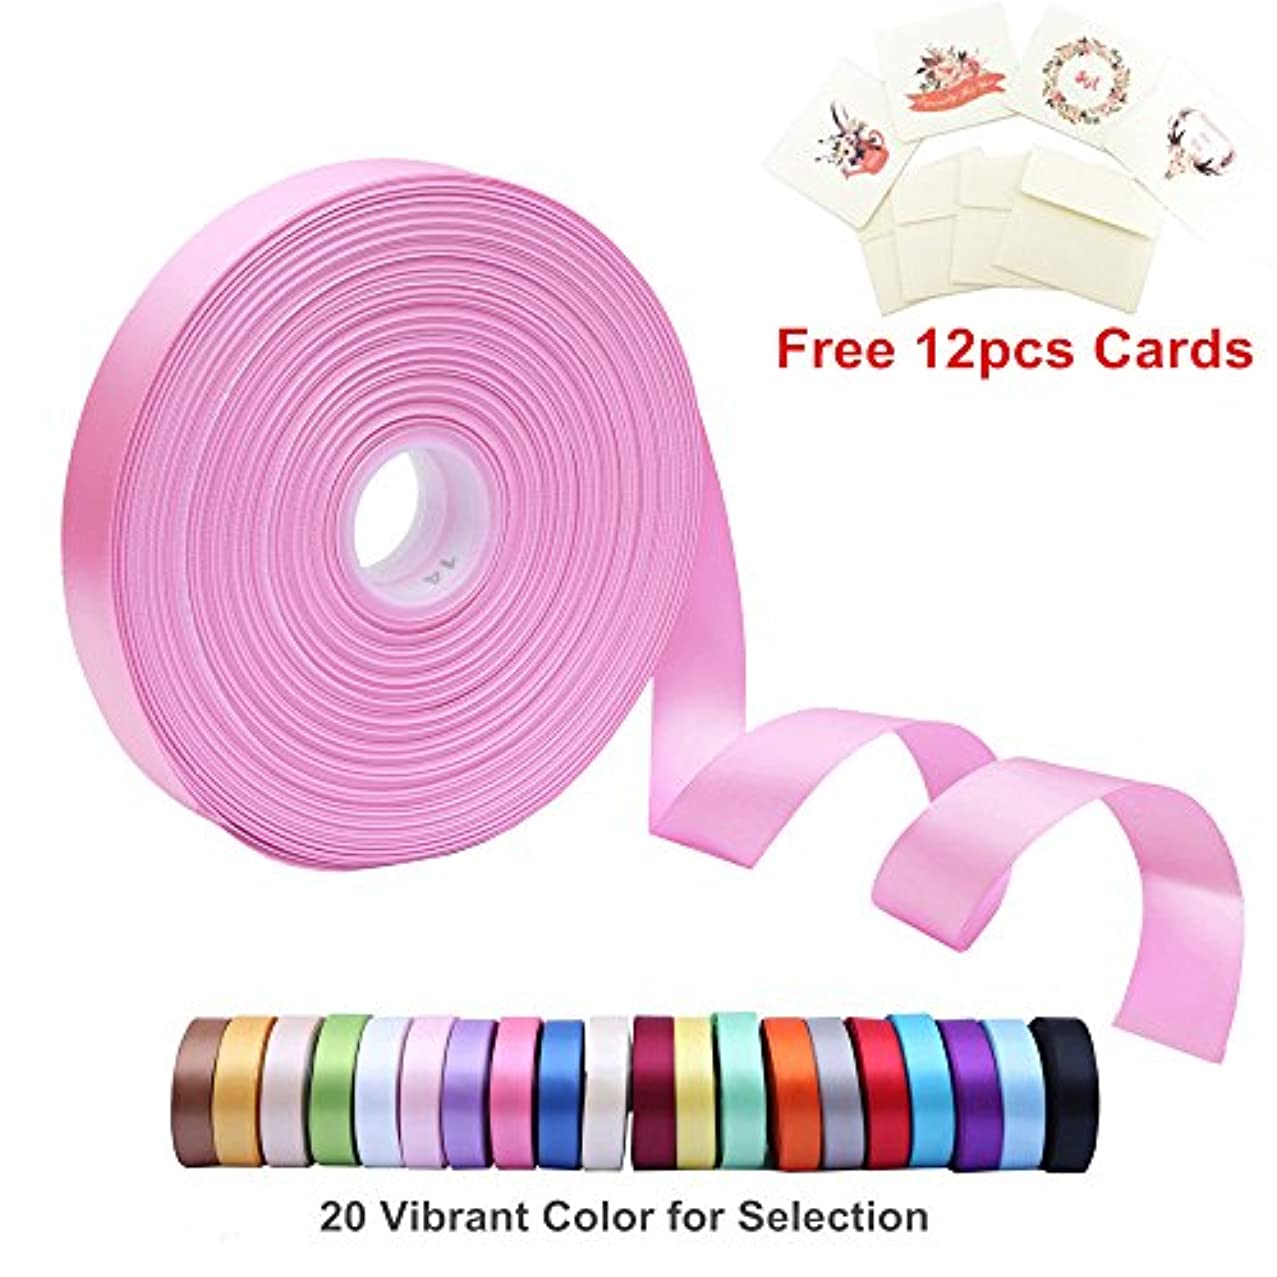 Double Face Satin Ribbon 1 Inch Wide x 100 Yard Roll (300 FT Spool) with Free 12 Greeting Cards for Art & Sewing, Party/Wedding Favor Ribbons, Pearl Pink